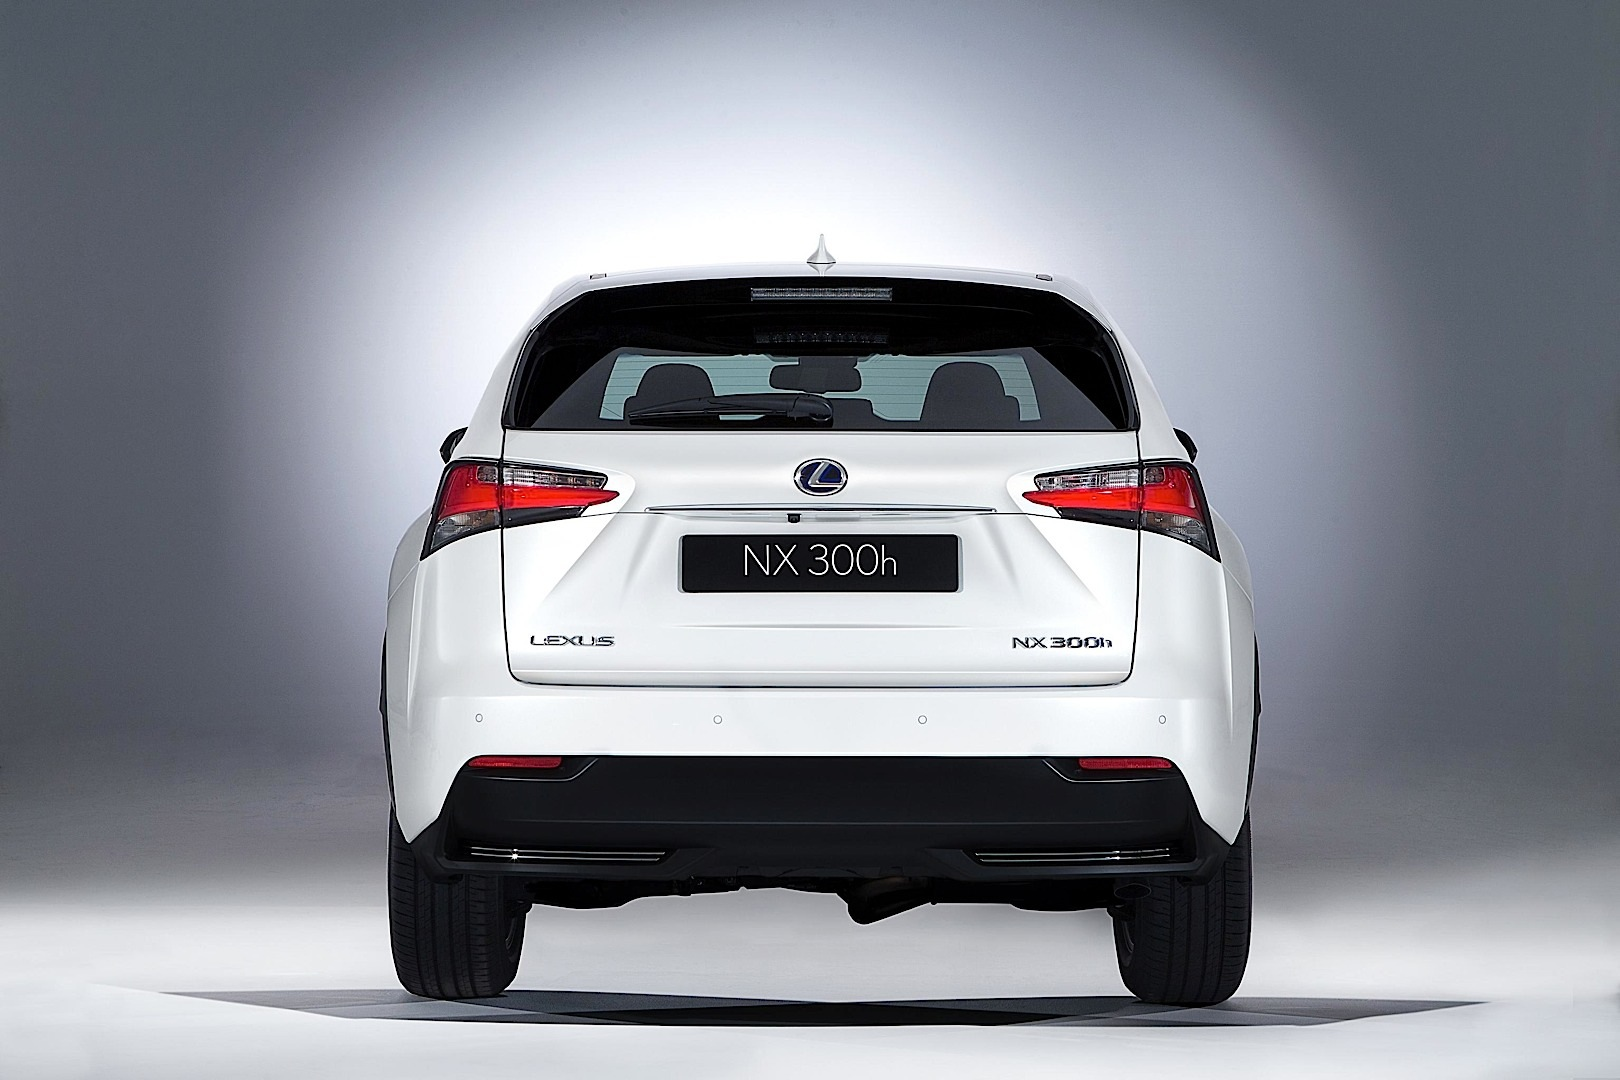 2015 Lexus Nx Is Good But Could Be Better Says Consumer